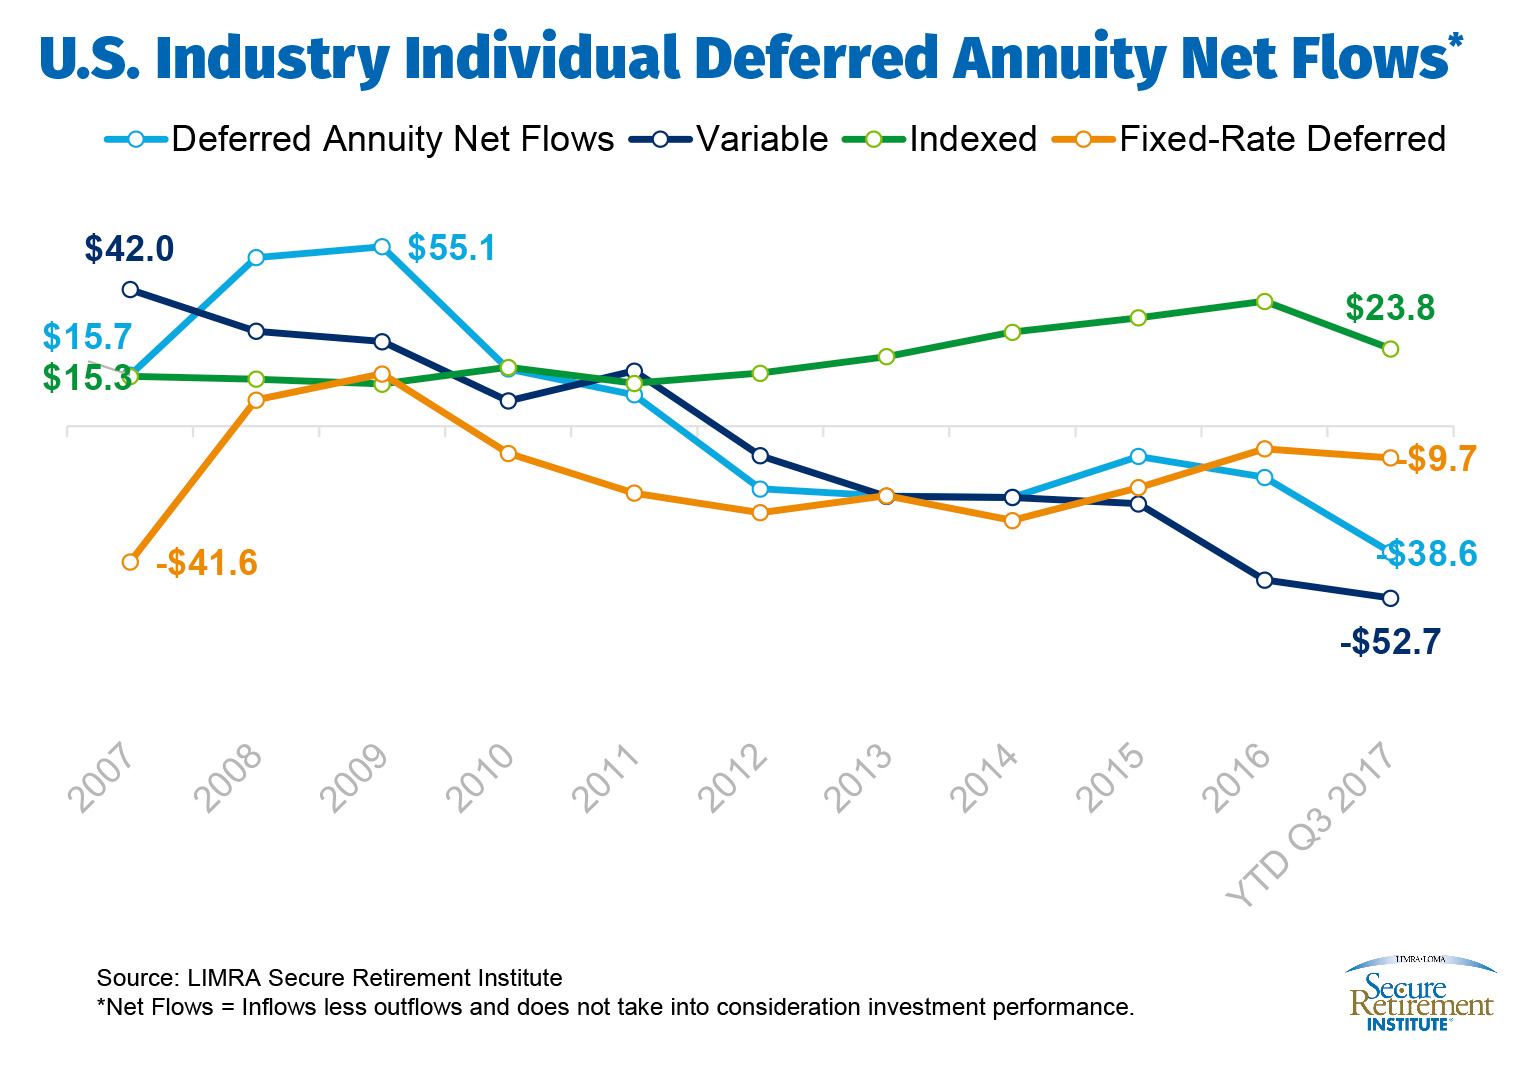 U.S. Industry Individual Deferred Annuity Net Flows*